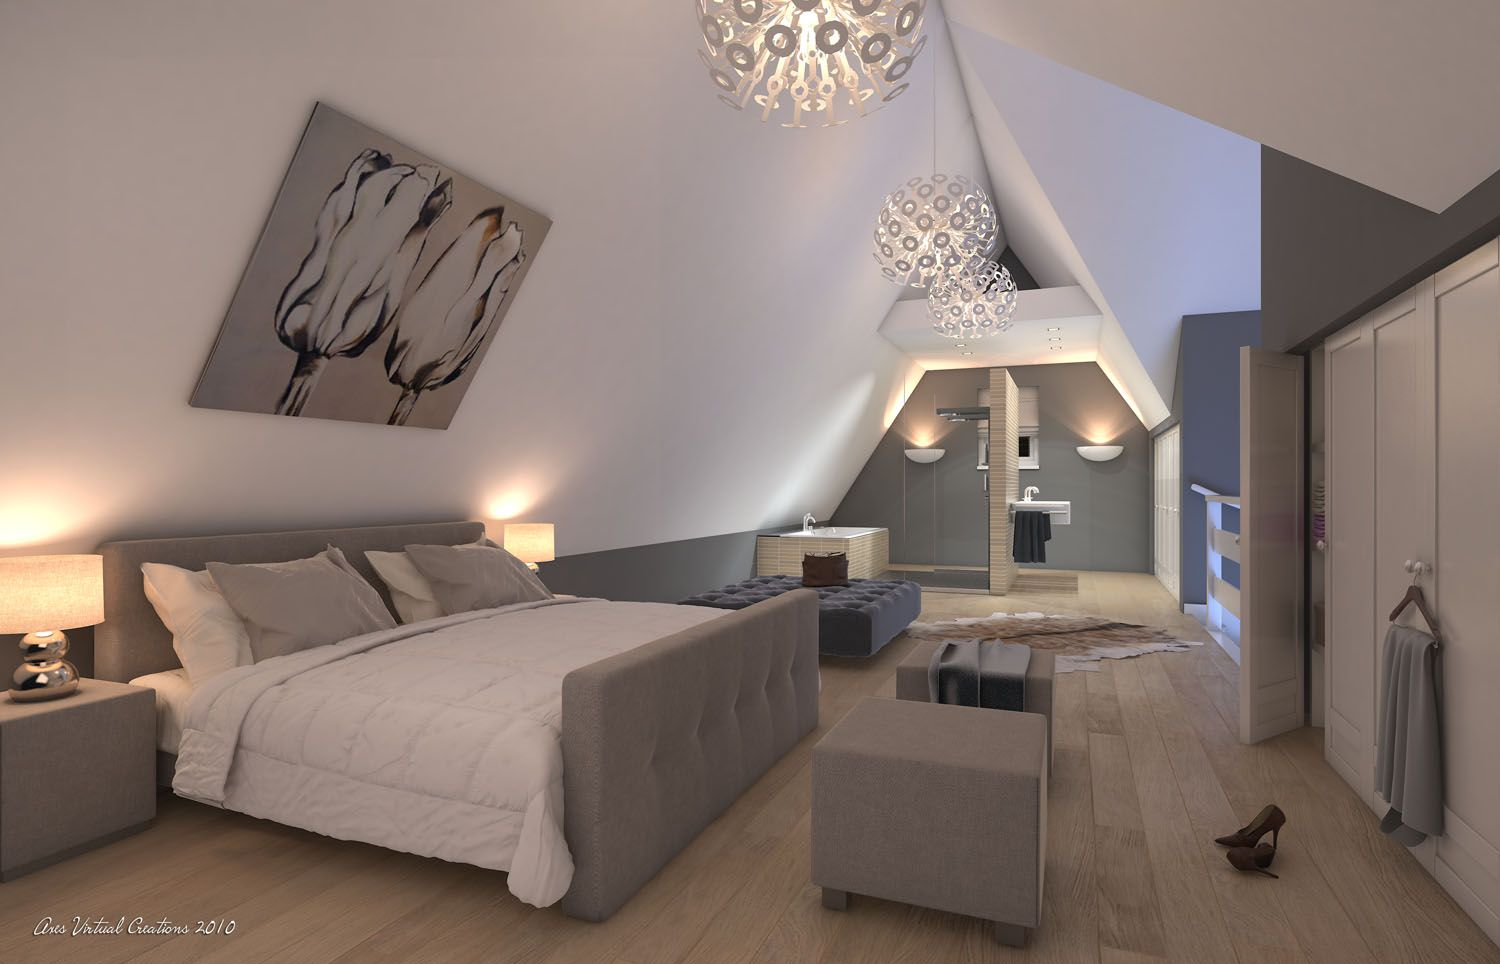 Idées Aménagement Combles Rooms Attic Bedrooms Home Bedroom En